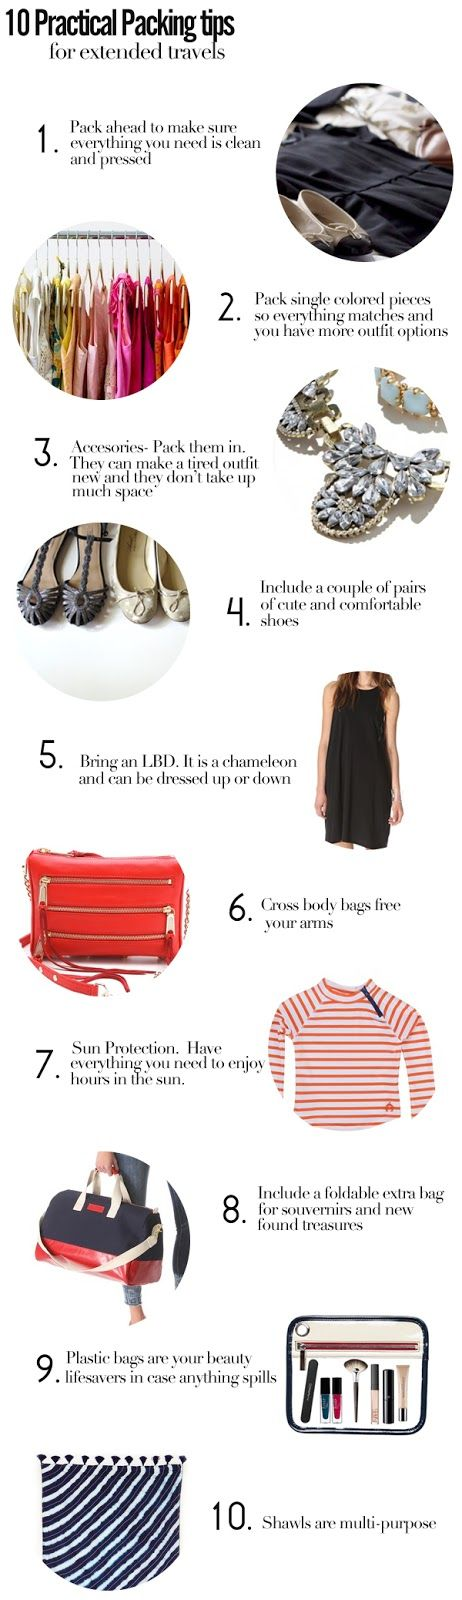 Have always done this and limit to 12 items of clothing that coordinate. Enough to travel anywhere for weeks!